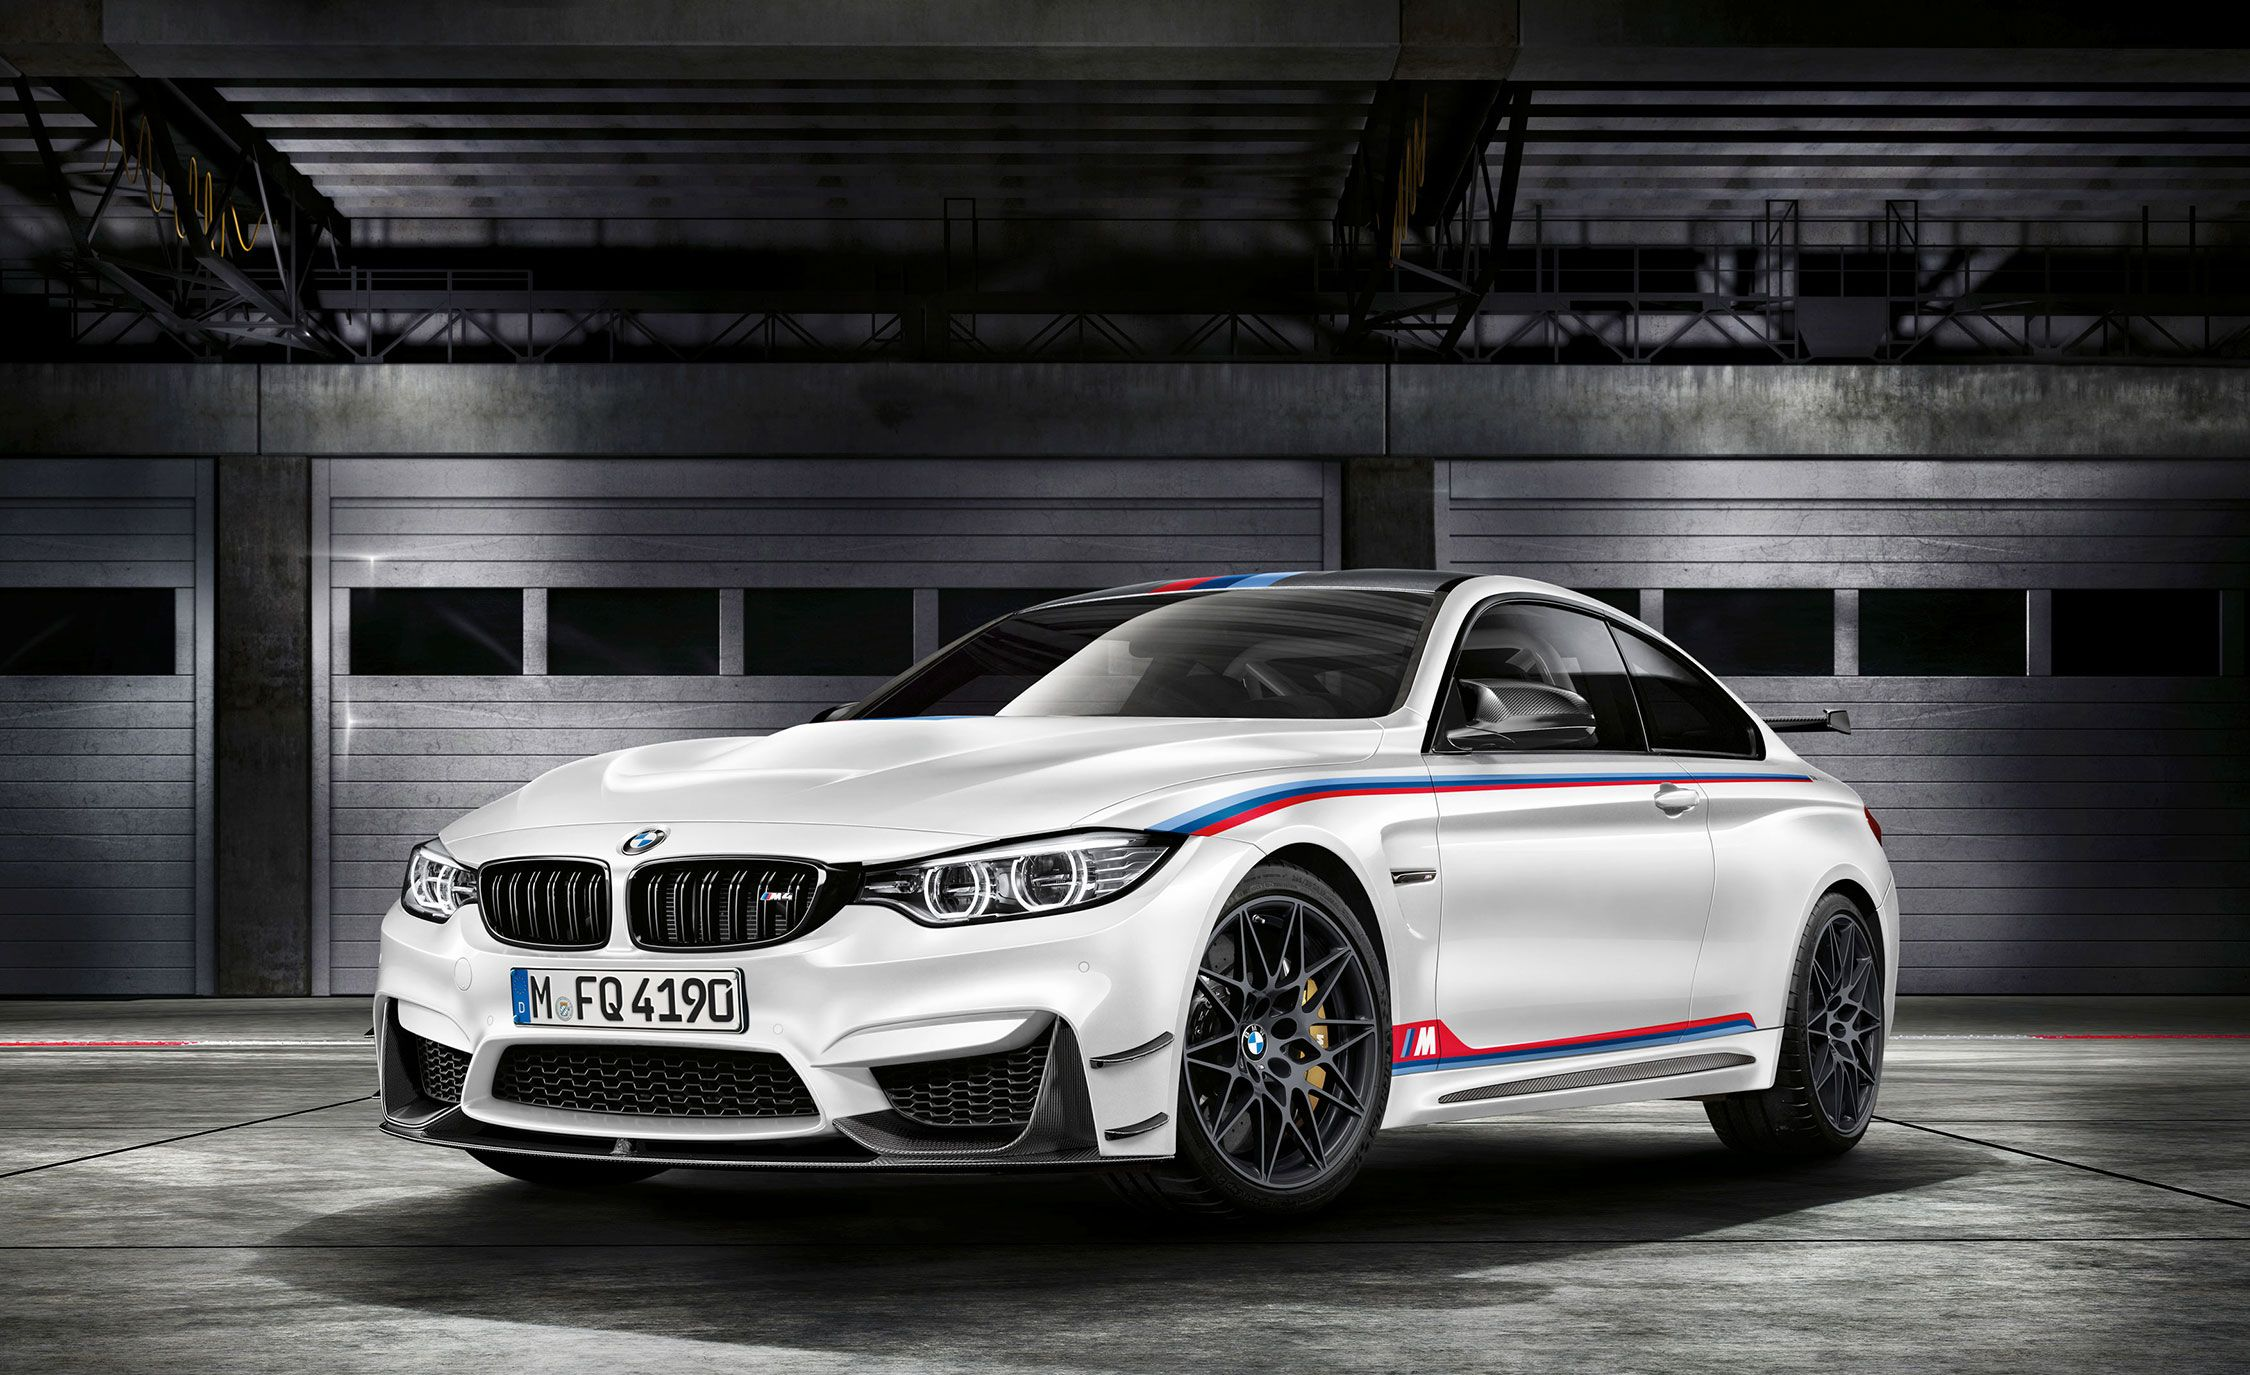 BMW M4 Reviews BMW M4 Price s and Specs